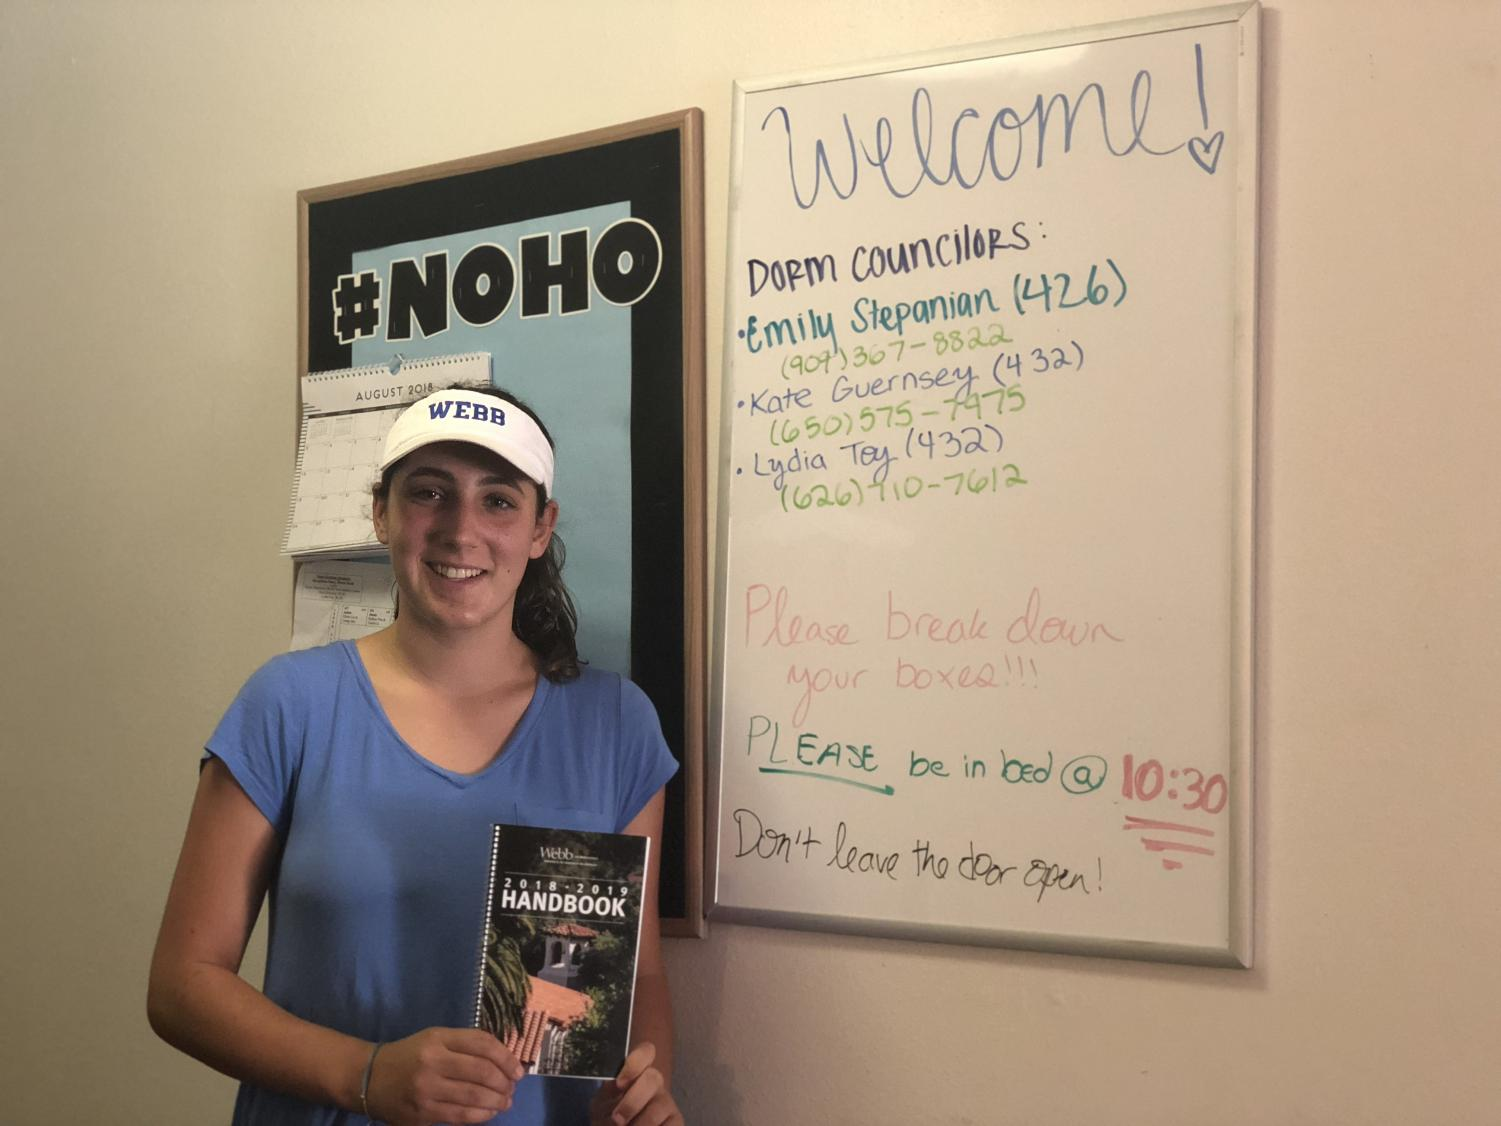 Sasha Theder ('22) is nervous yet excited to start her freshman year as a boarder in NoHo.